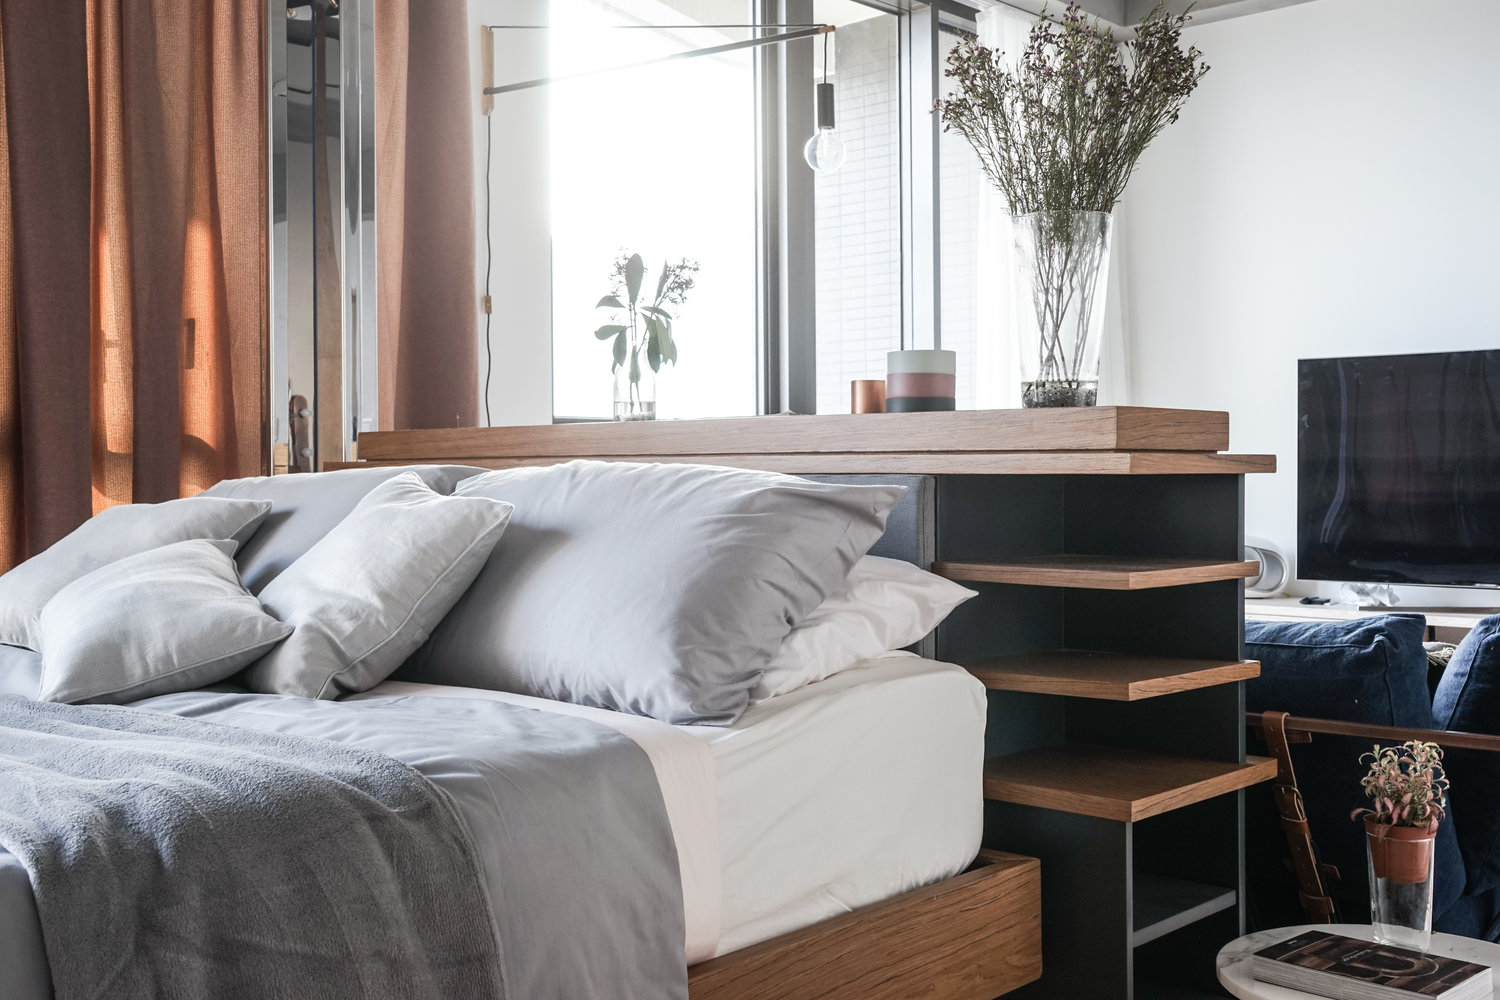 Wooden Slatted Headboard Modern Bedroom - 3 small studio apartments that exude luxurious space